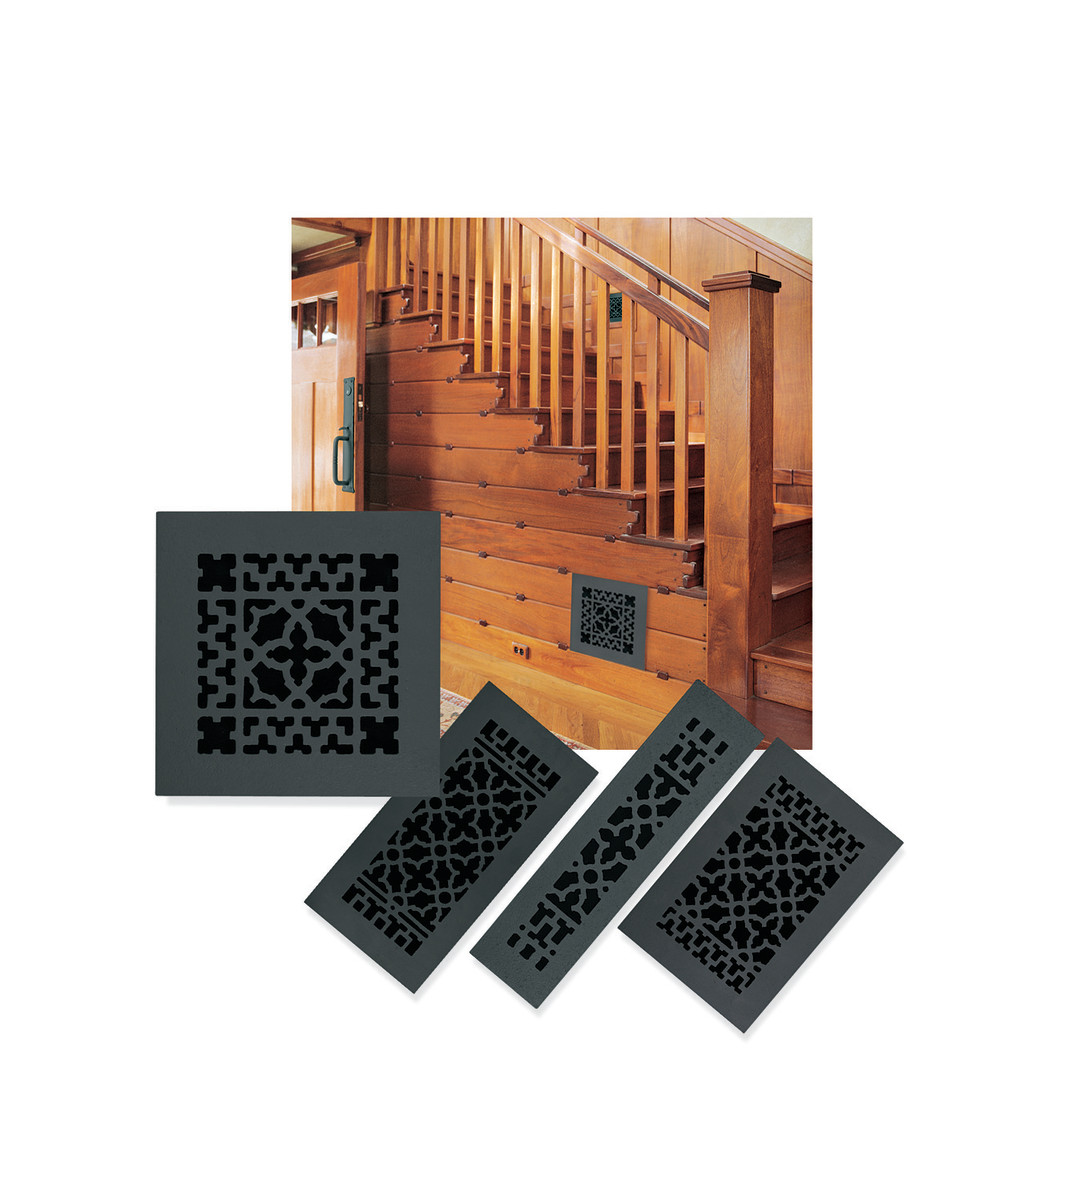 Dress up your Arts & Crafts interior with decorative cast iron grilles and registers like this one by Acorn Manufacturing.